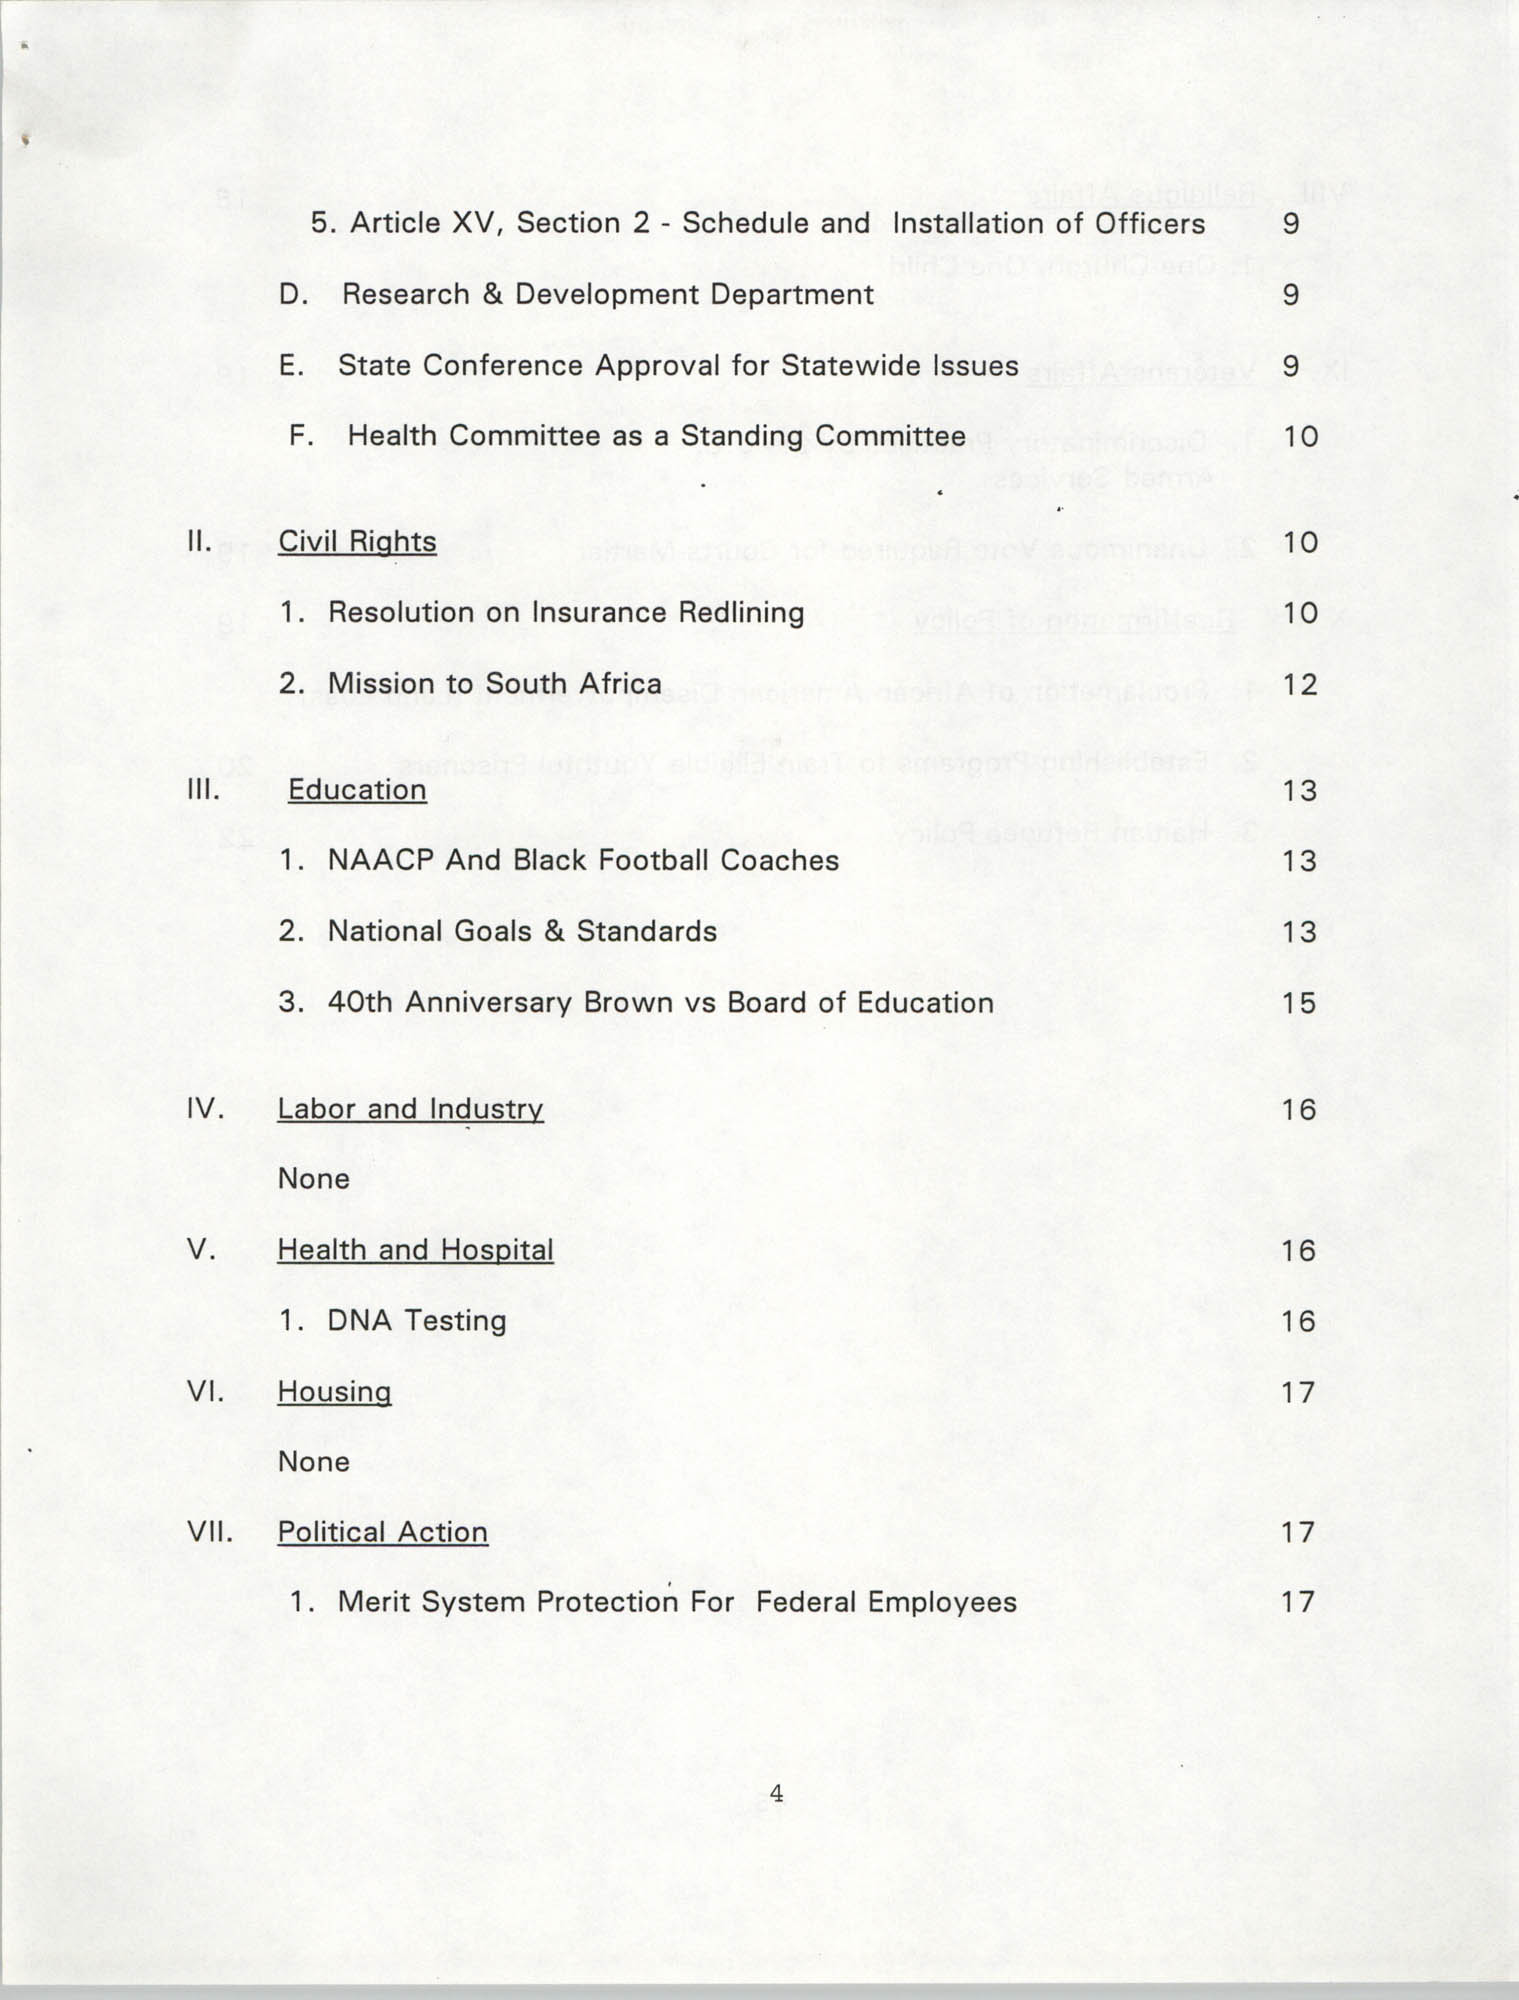 Resolutions Submitted Under Article X, Section 2 of the Constitution of the NAACP, 1994, Page 4